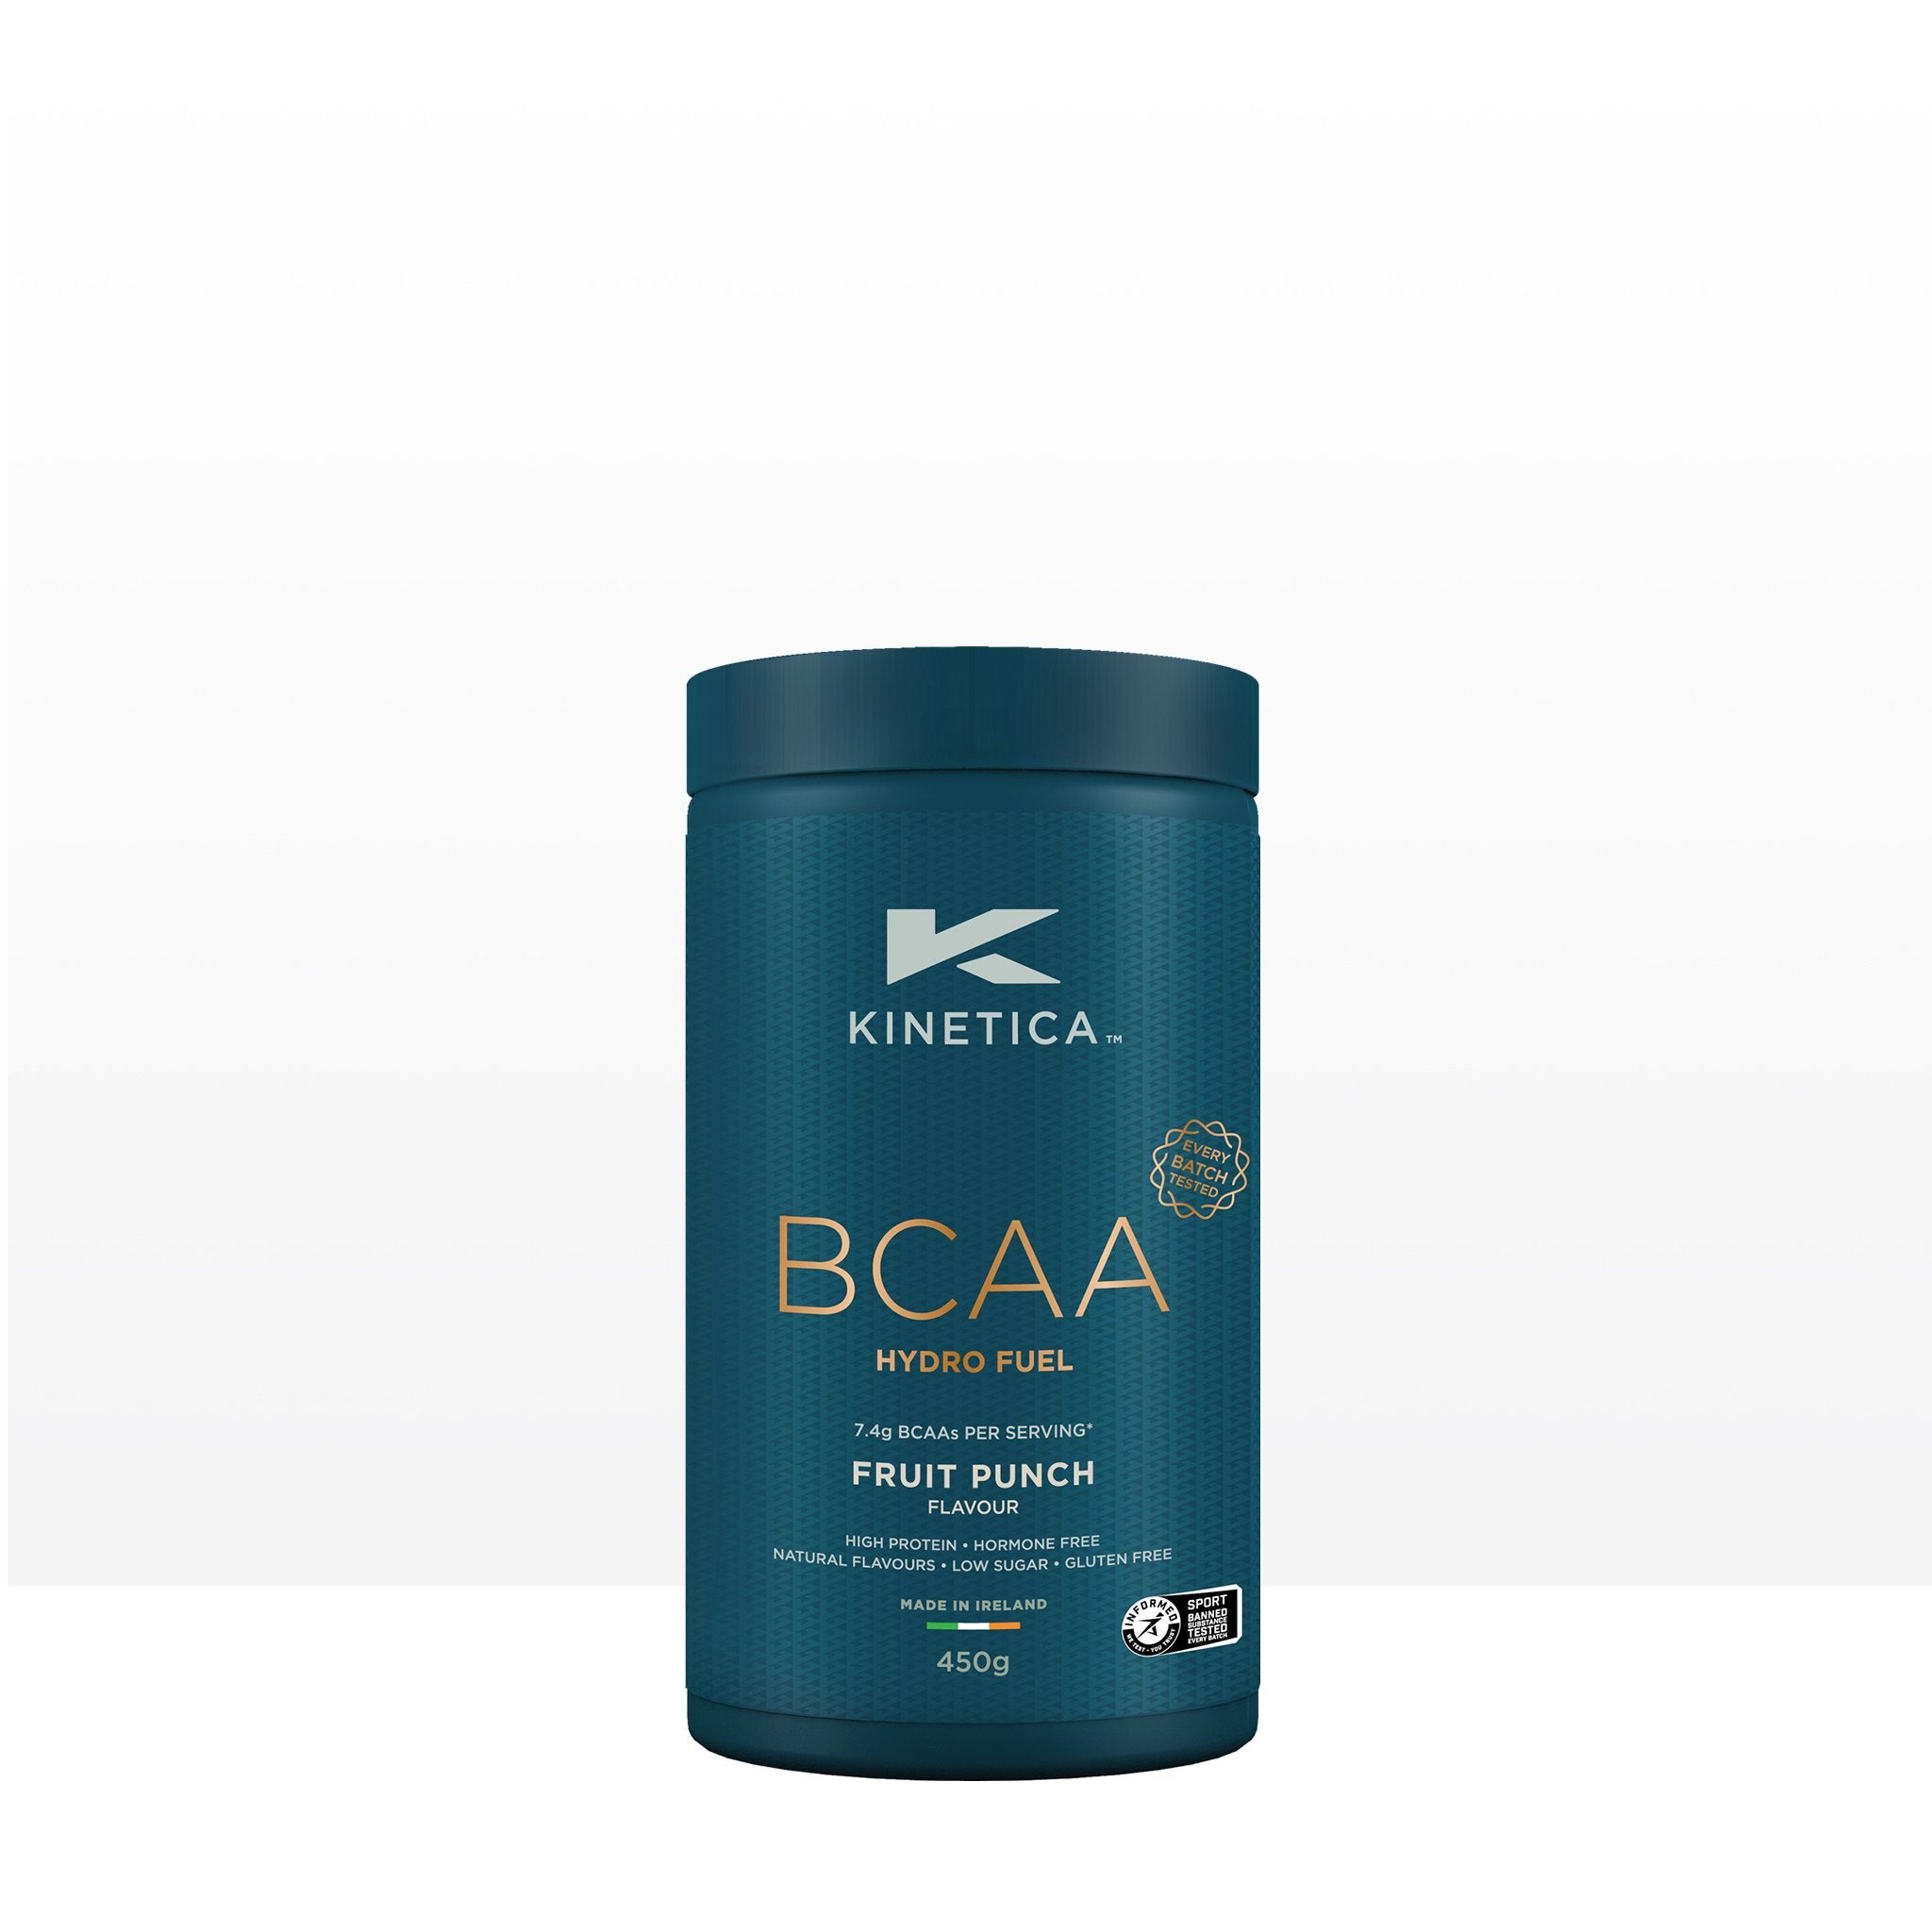 BCAA Hydrofuel Fruit Punch